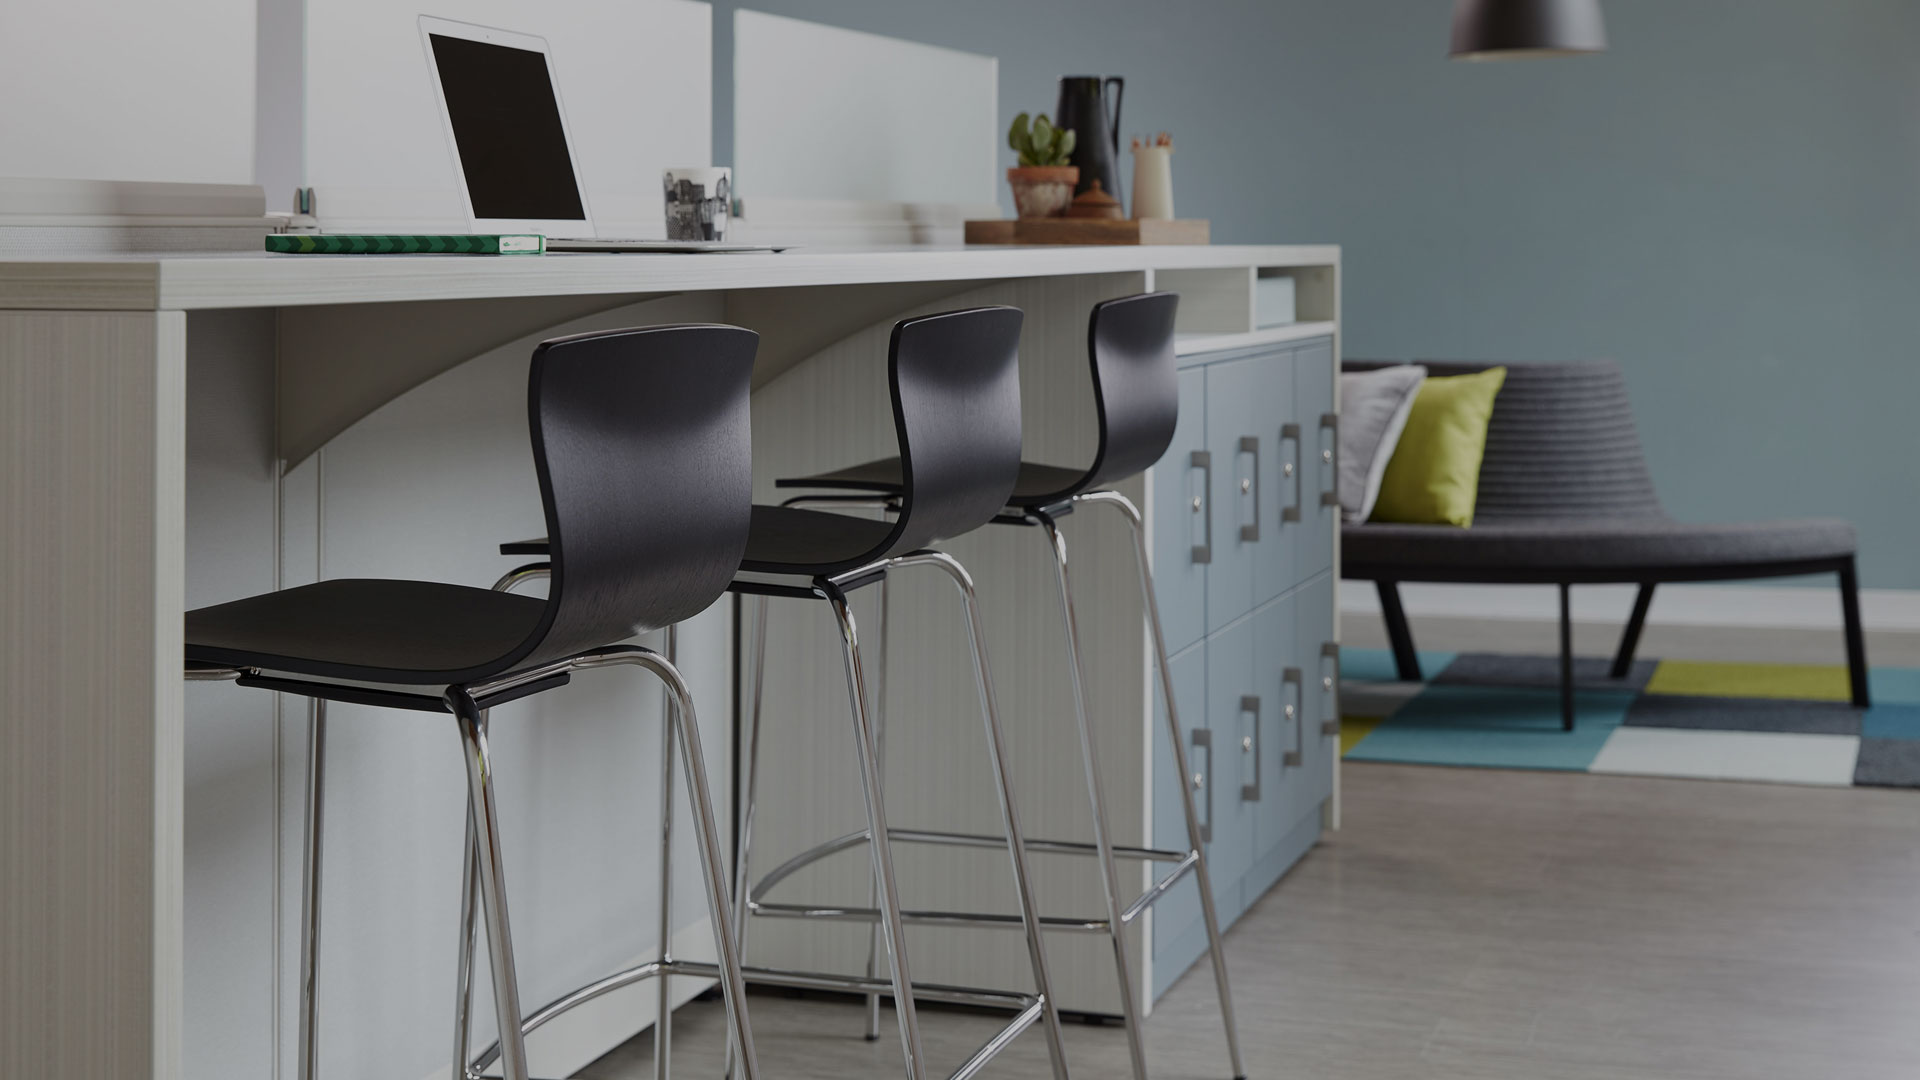 Butterfly Cafe Stools and Trendway Work Table with Lockers